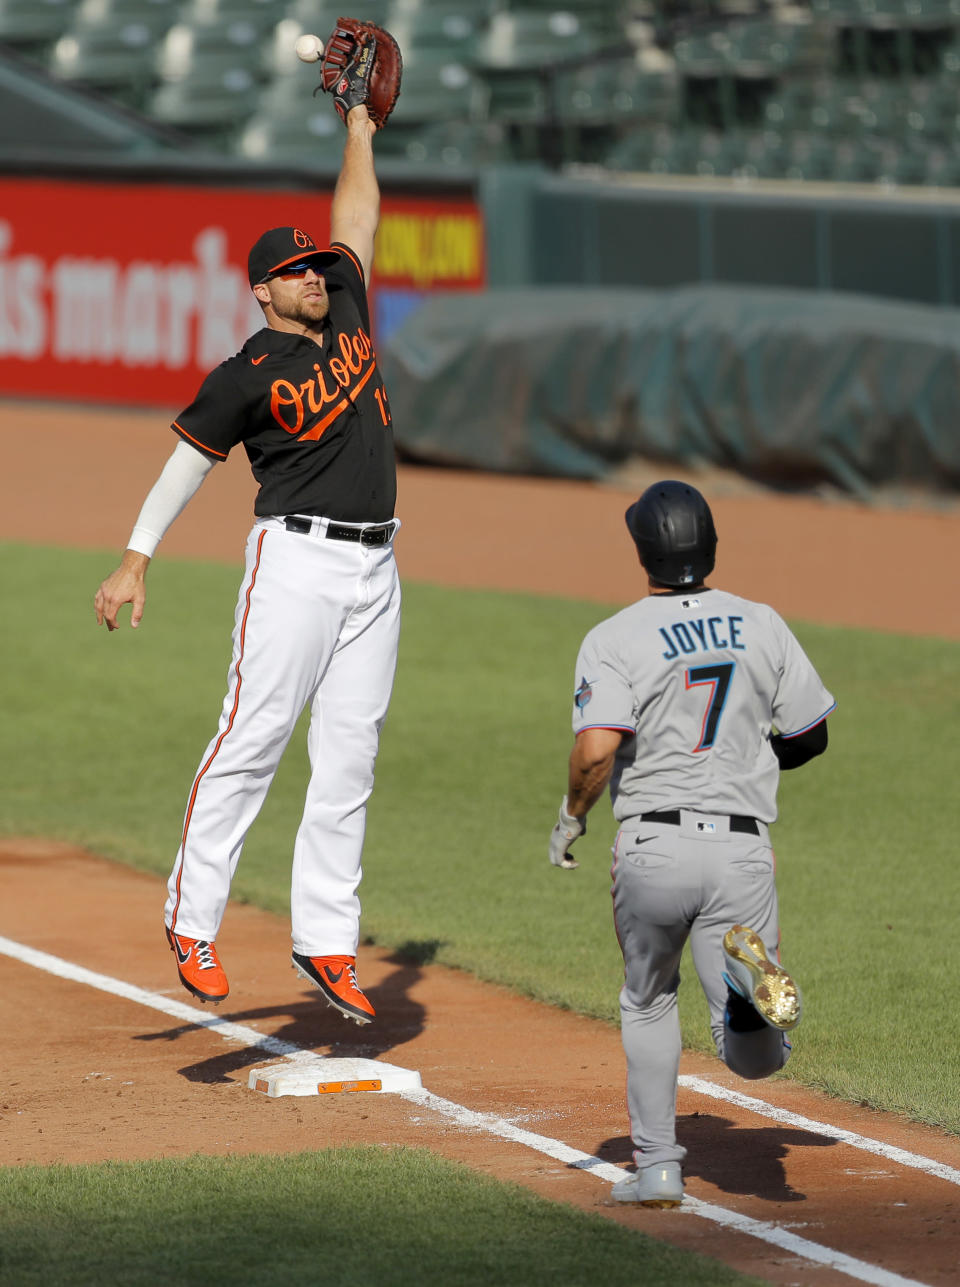 Baltimore Orioles first baseman Chris Davis, left, is unable to catch a high throw from starting pitcher Alex Cobb, not visible, on a dribbler hit by Miami Marlins' Matt Joyce (7) during the second inning in game one of a baseball double-header, Wednesday, Aug. 5, 2020, in Baltimore. (AP Photo/Julio Cortez)